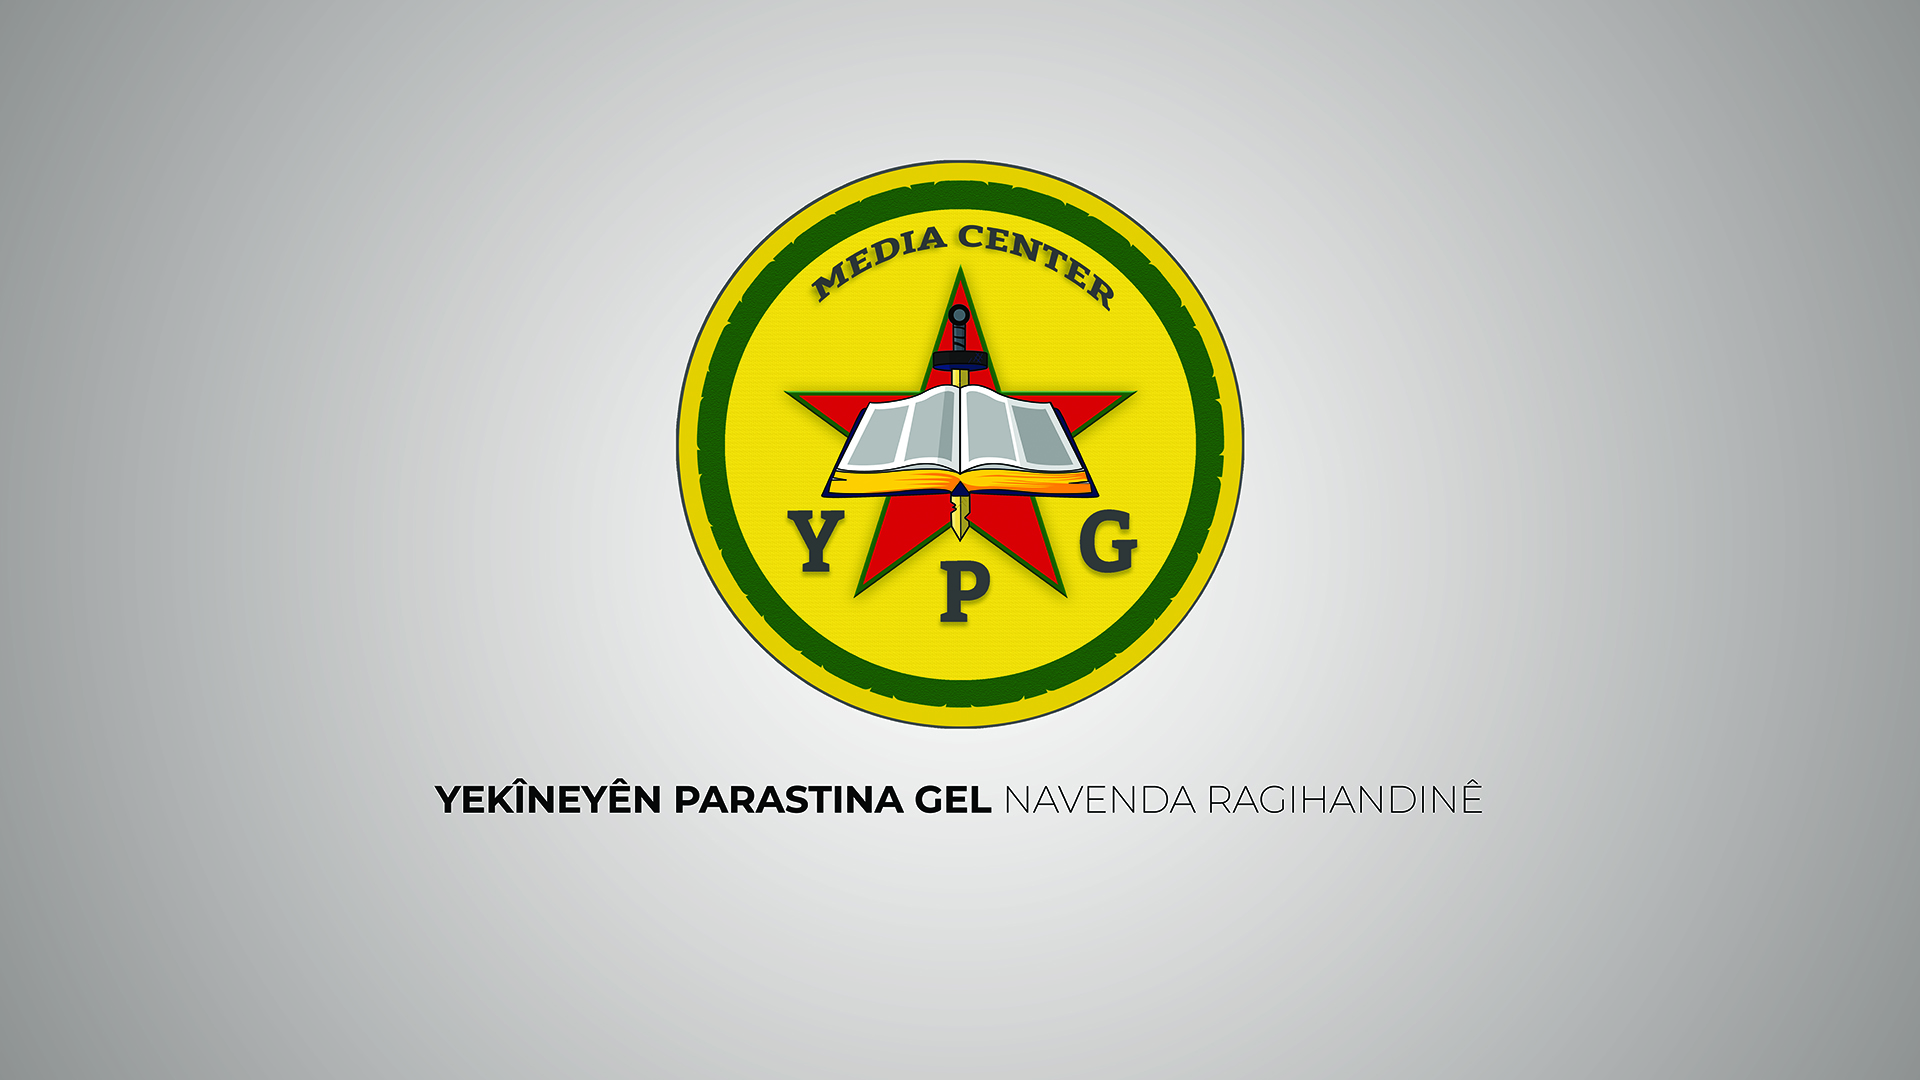 Photo of YPG: 2 ÇETE LI NAVÇEYA BILIBLÊ HATIN KUŞTIN